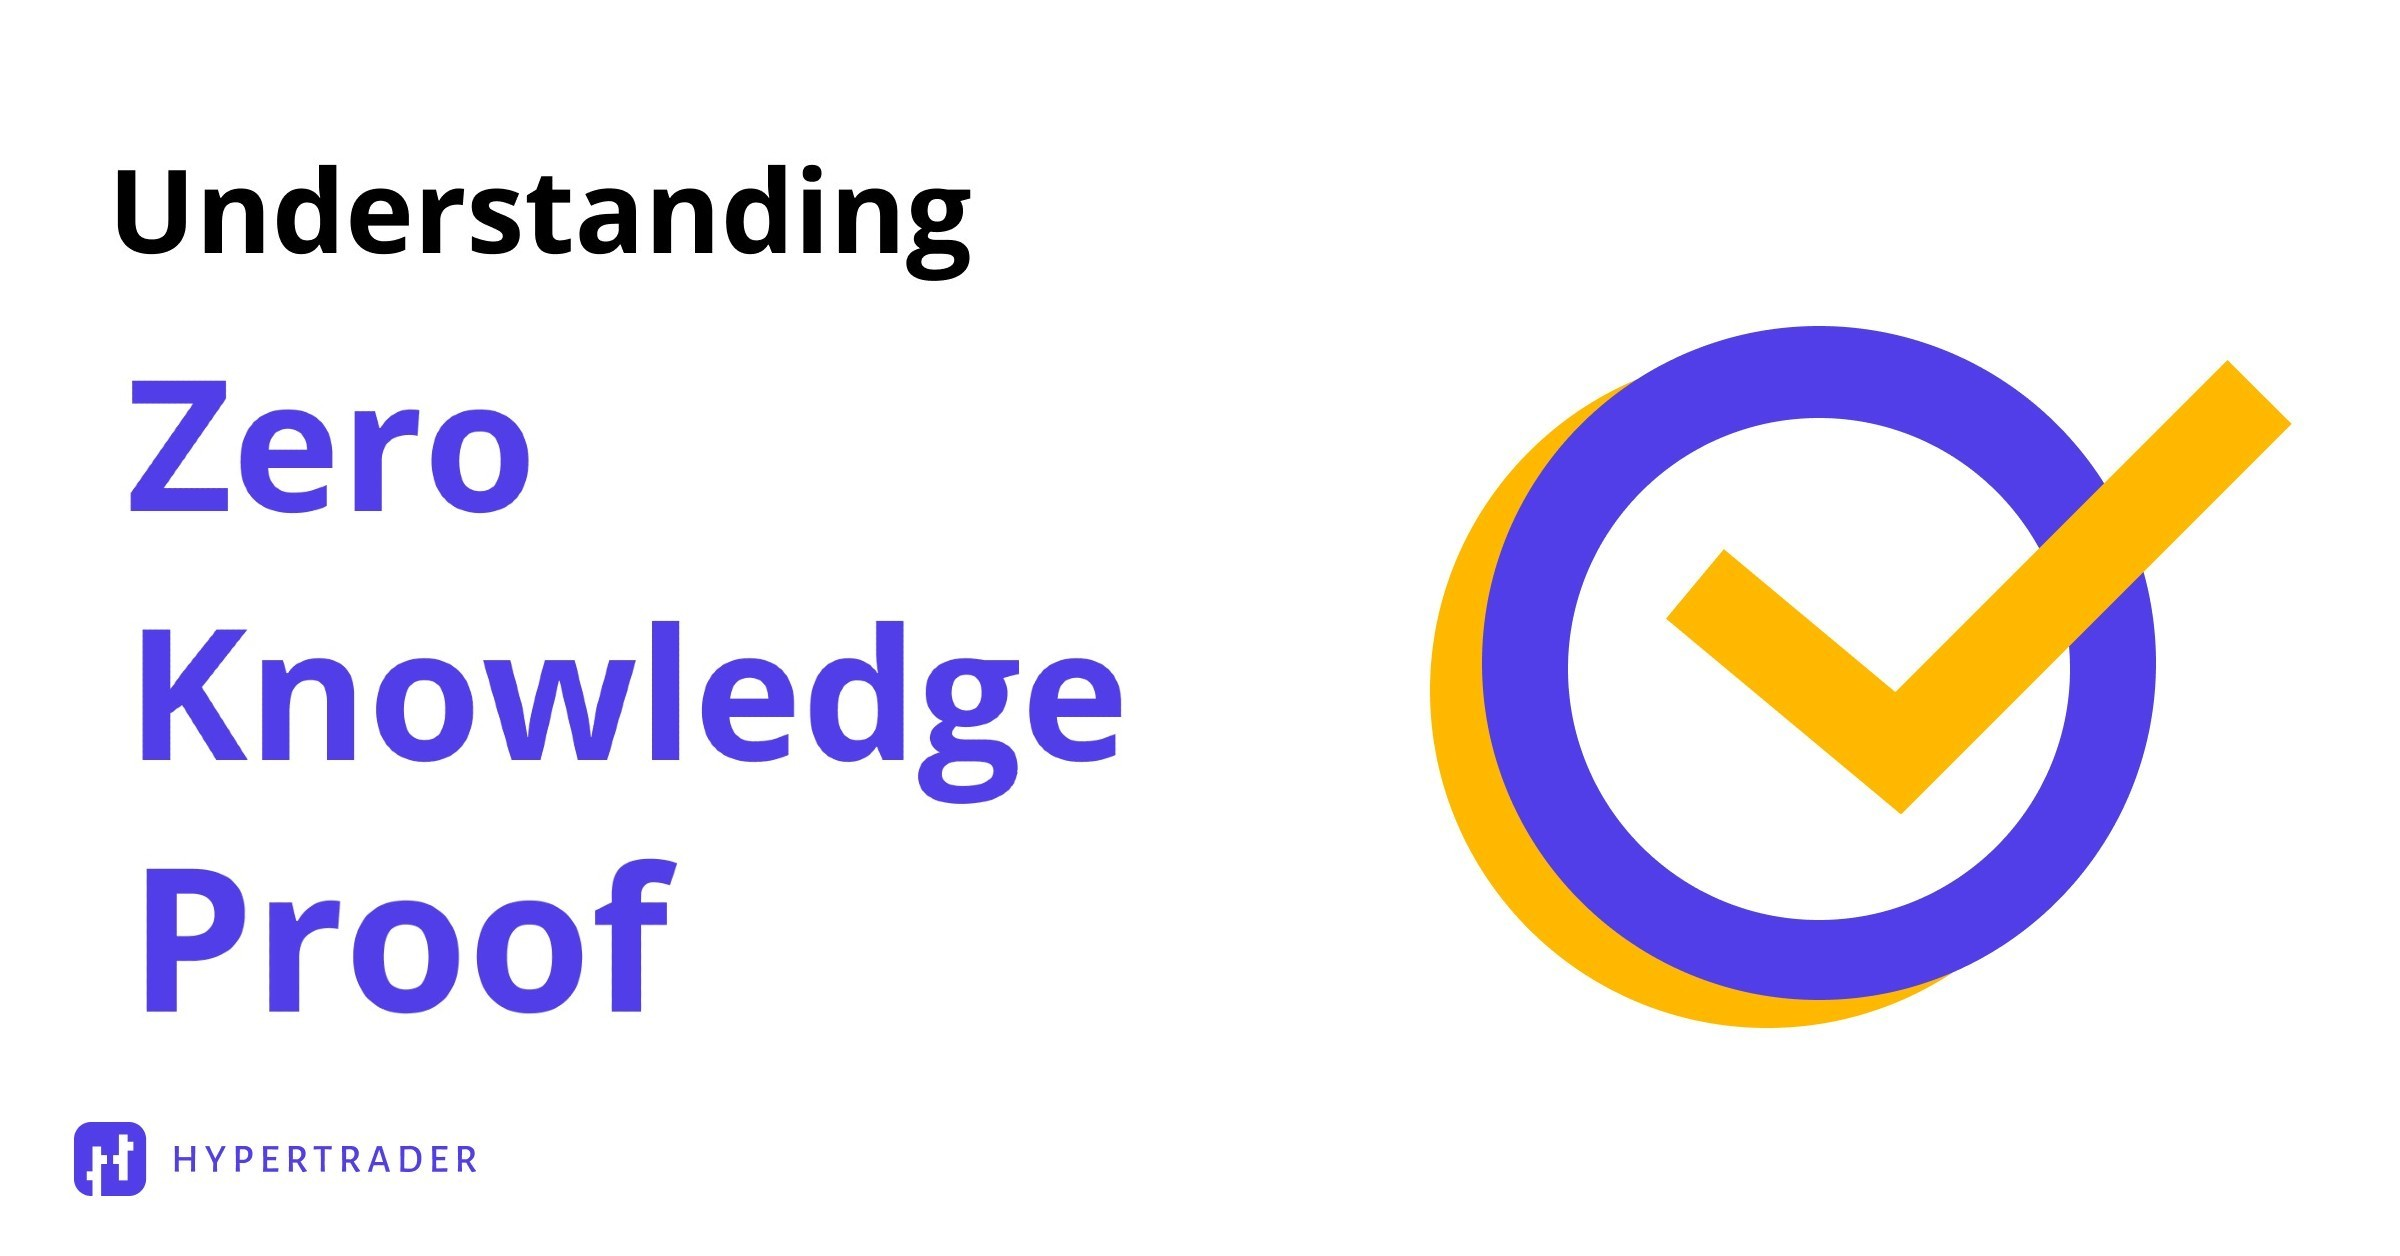 What are Zero Knowledge Proofs?